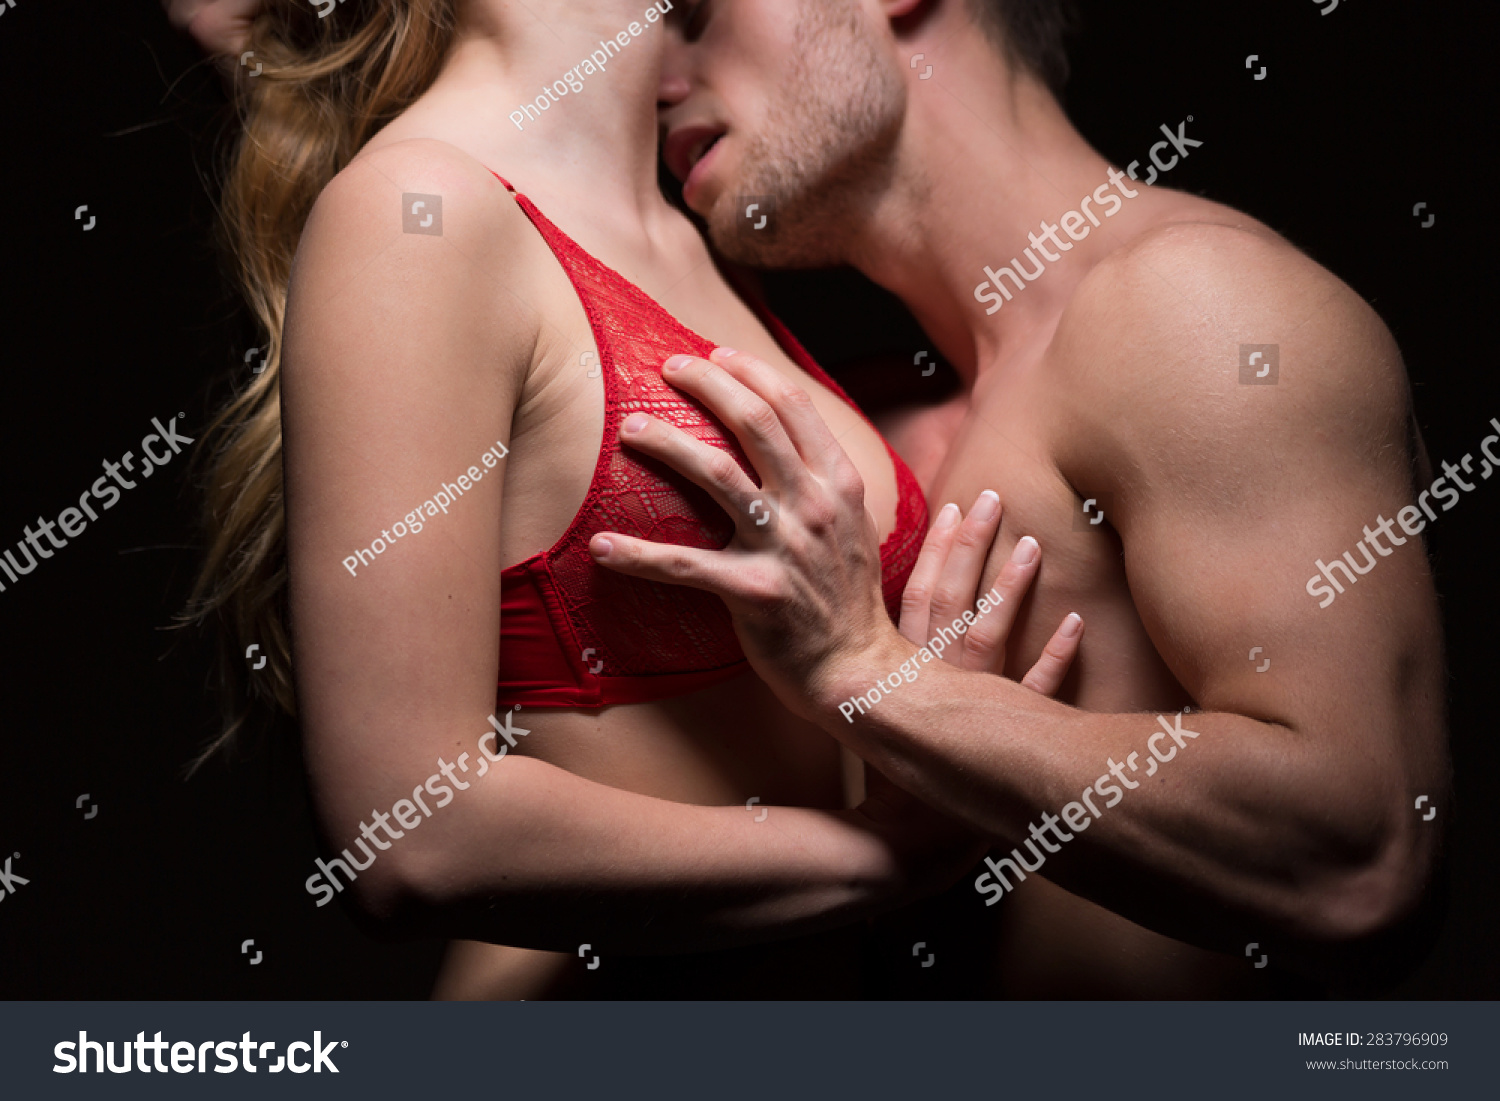 Passionate Man Kissing Woman Red Lingerie Stock Photo Edit Now 283796909